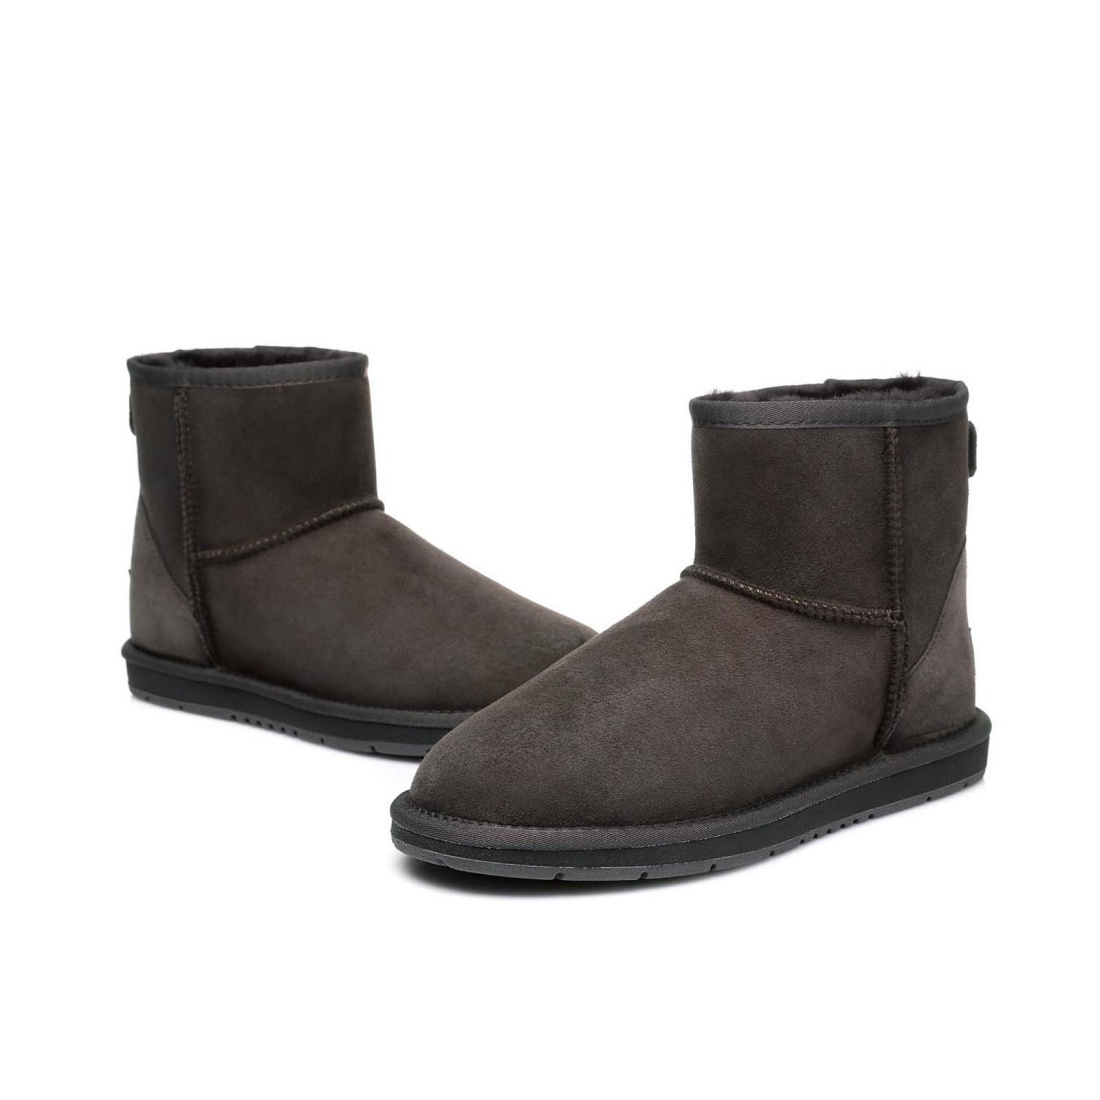 UGG Ankle Boots Mini - Chocolate - AU Women 6 / Men 4